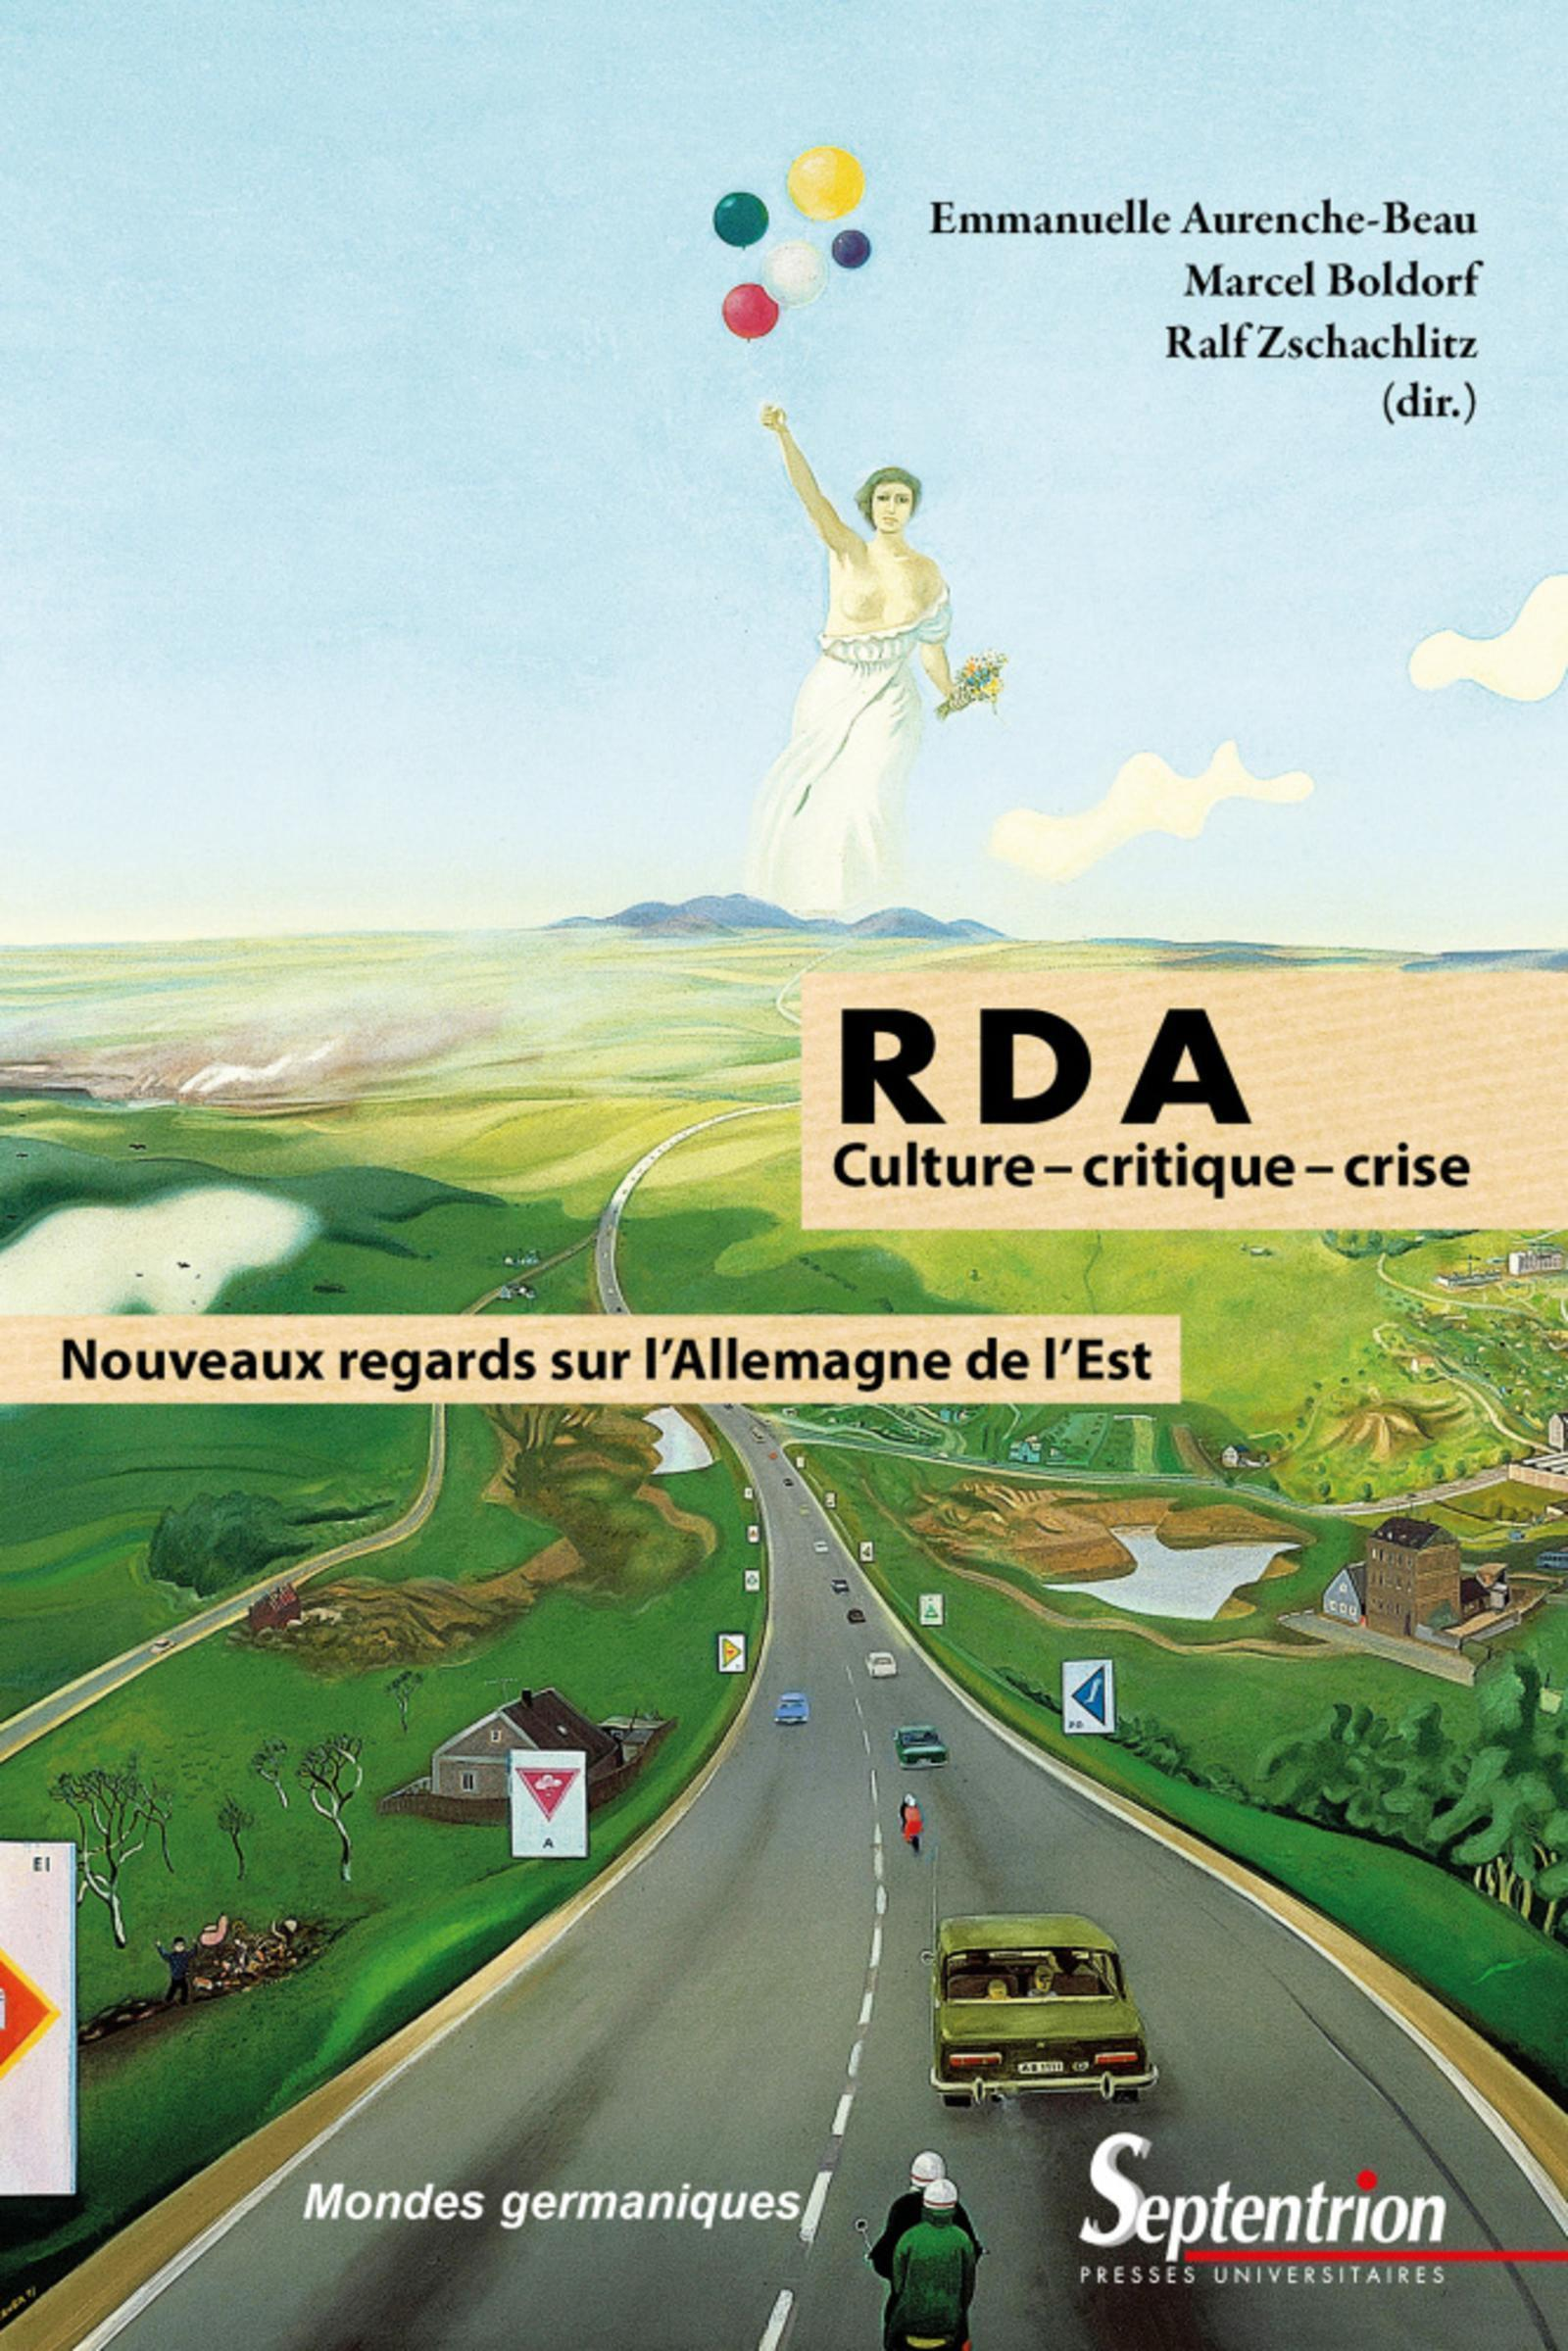 RDA CULTURE - CRITIQUE - CRISE